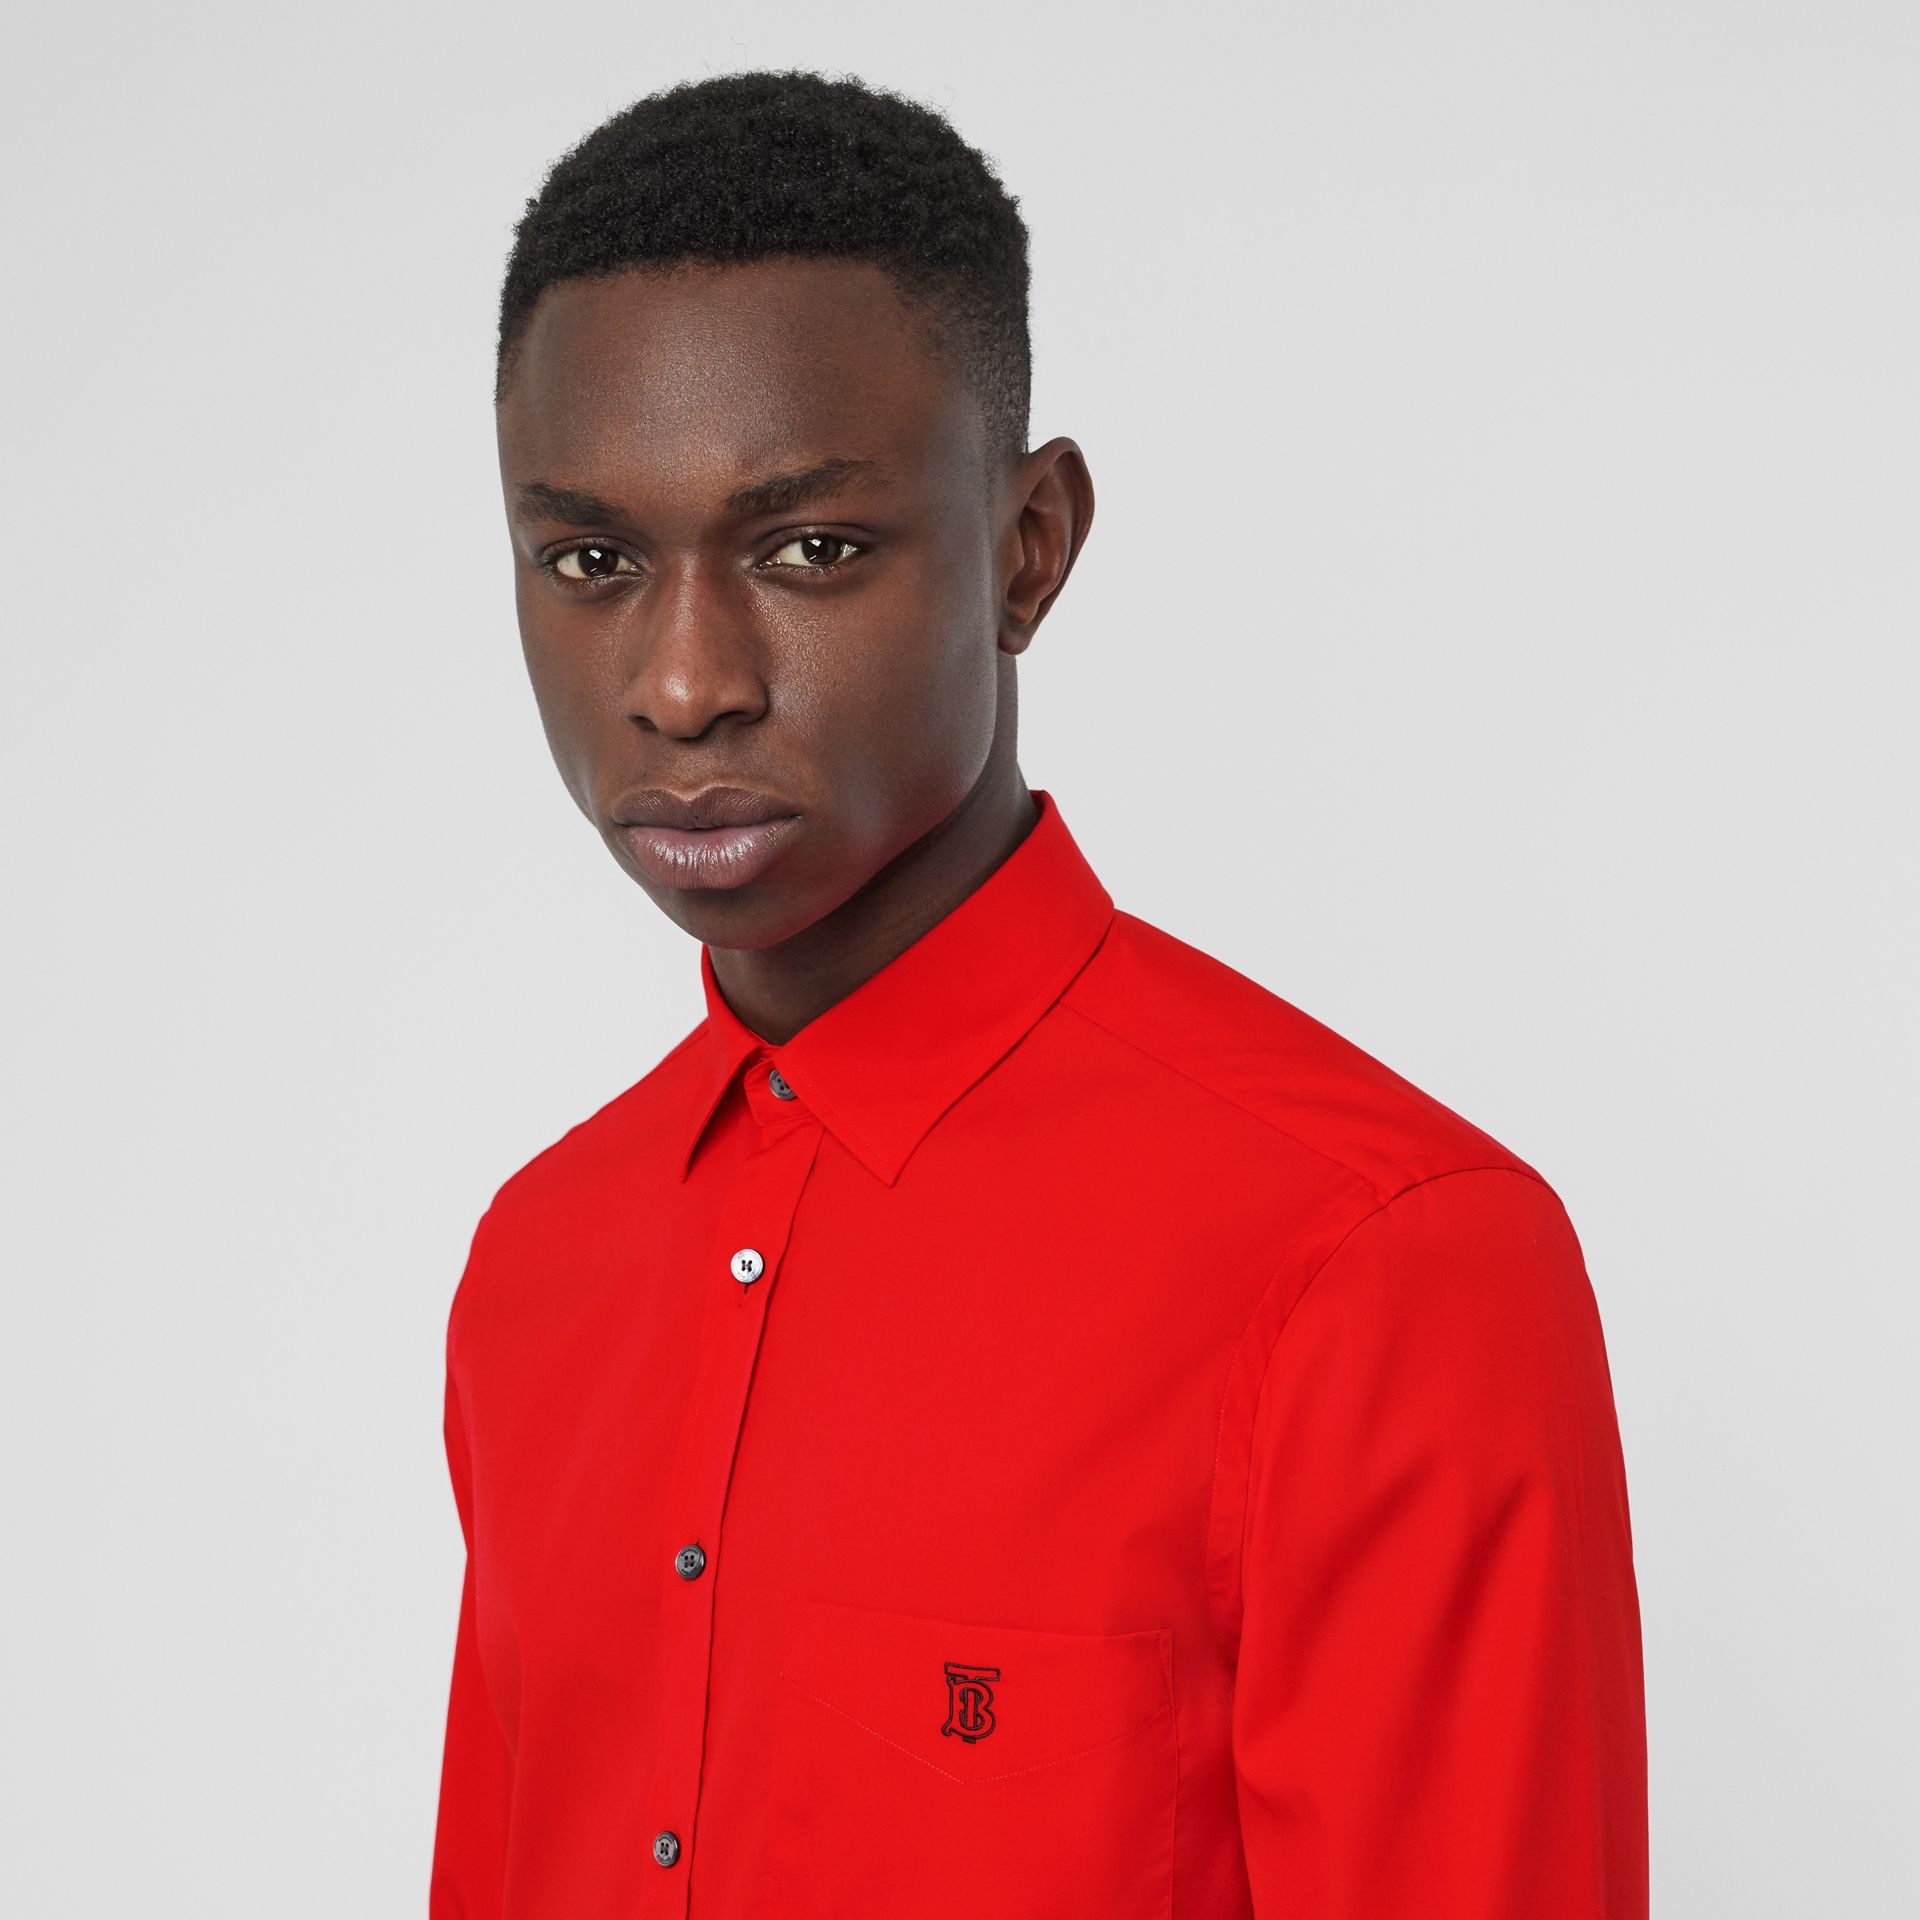 Monogram Motif Stretch Cotton Poplin Shirt in Bright Red - Men | Burberry - gallery image 1